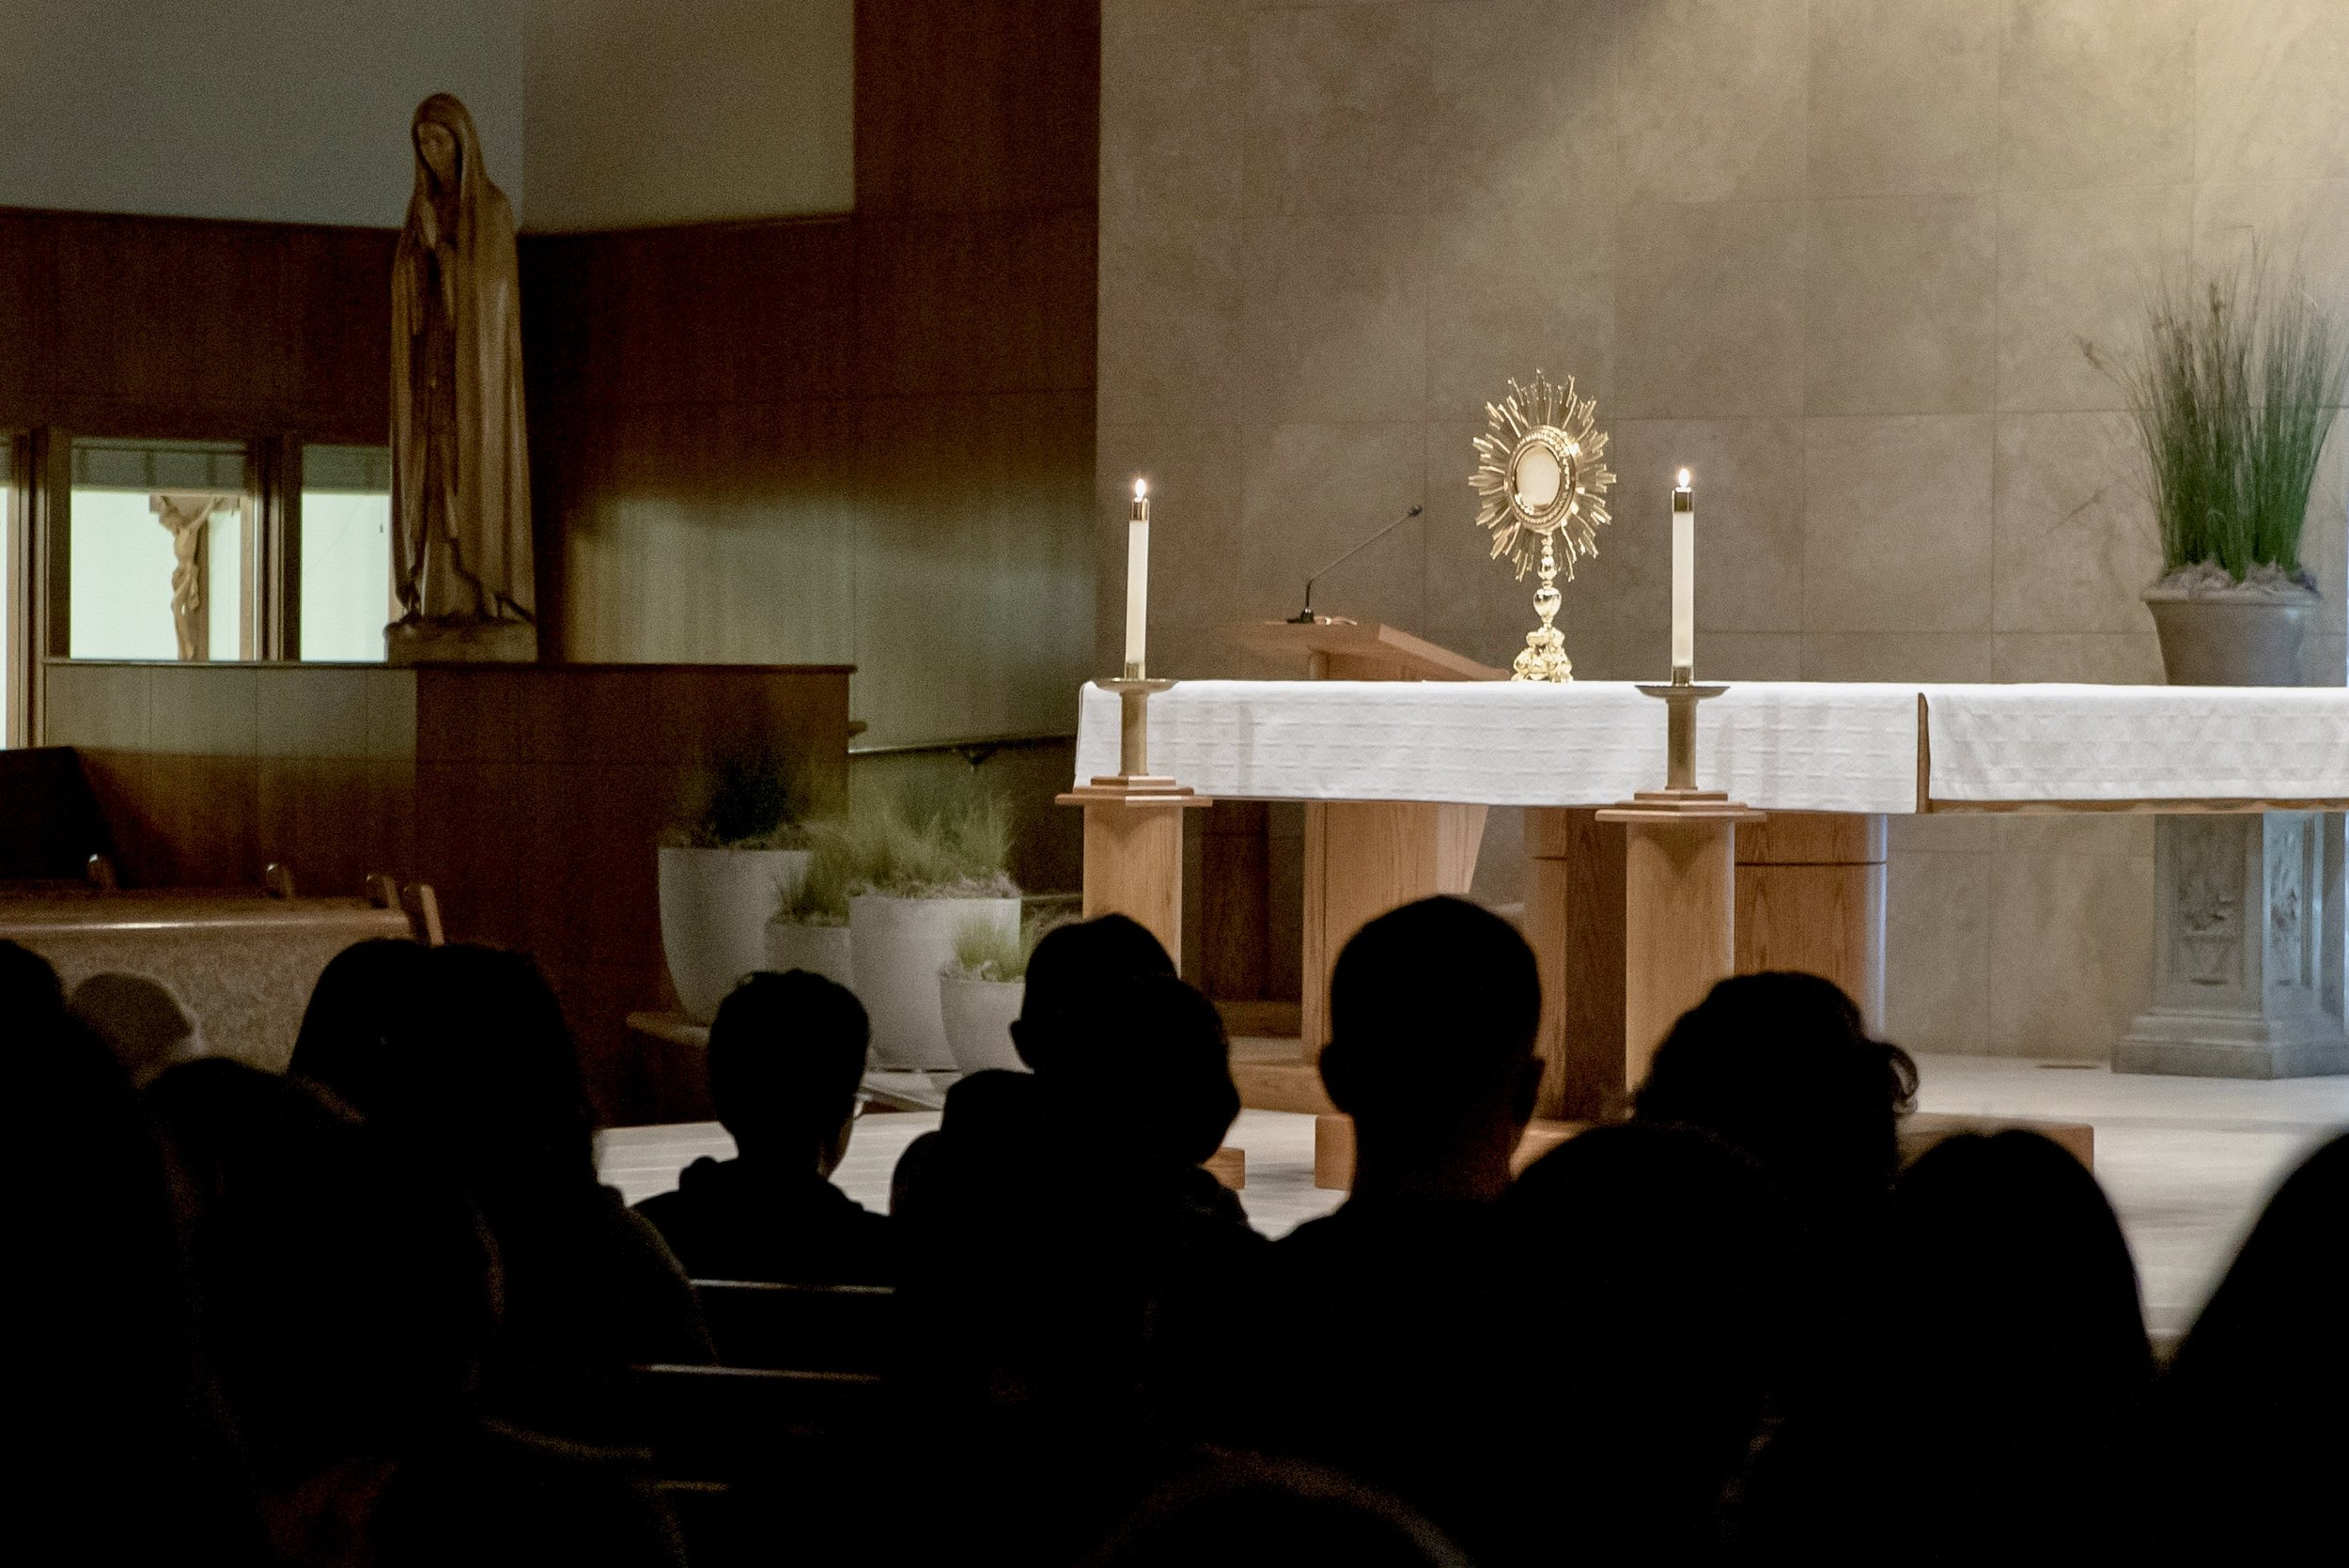 Adoration - All ages are welcome to come and spend some time with the physical presence of Jesus.